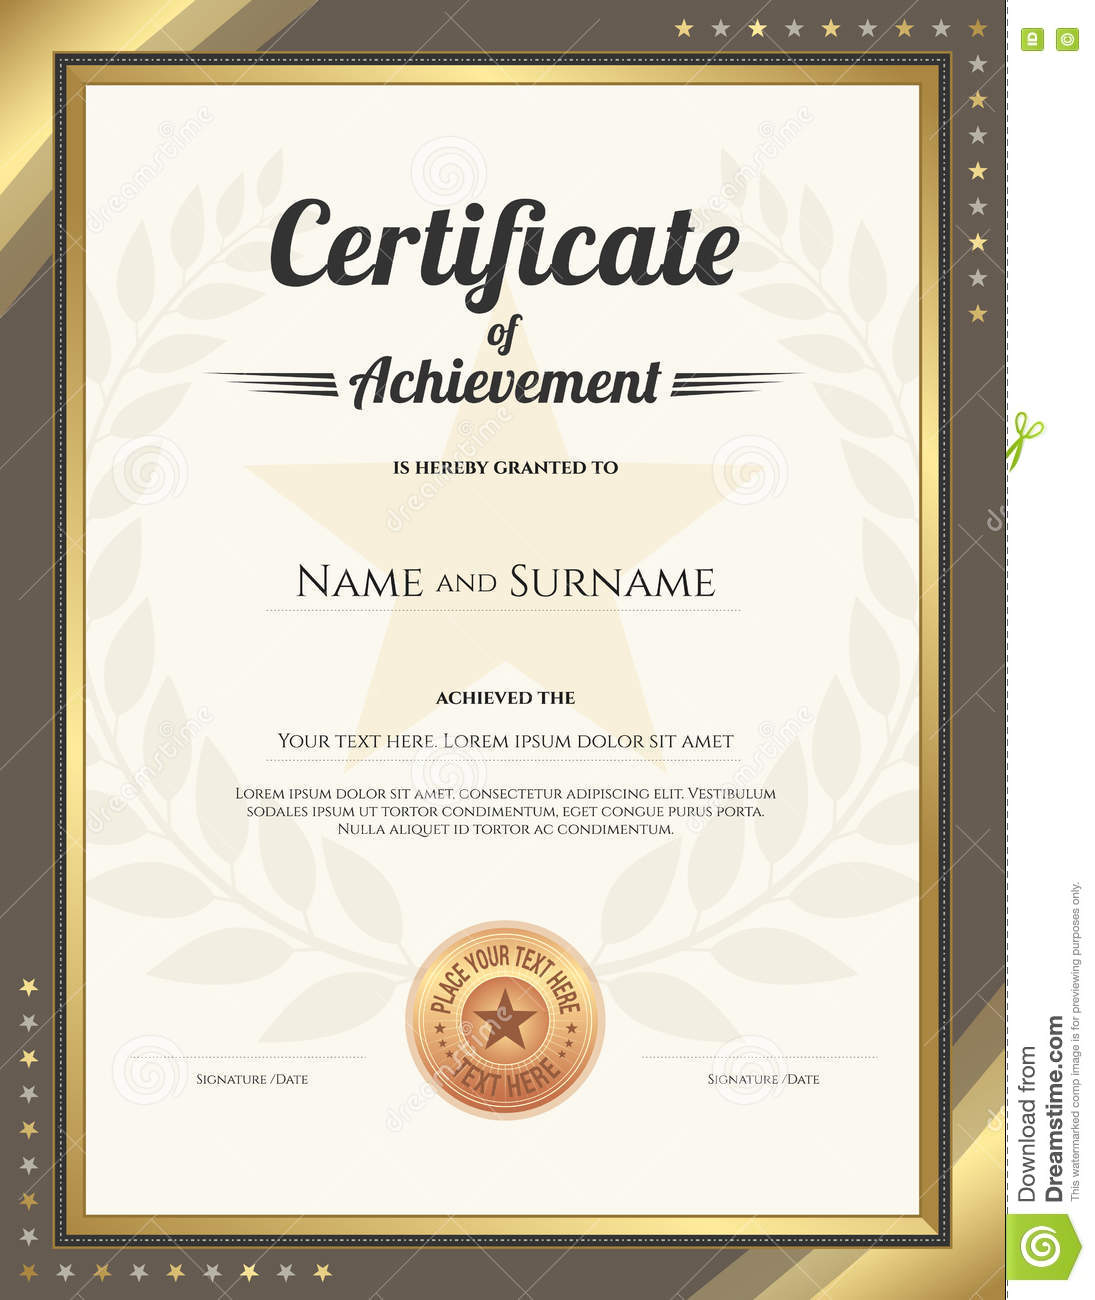 Portrait Certificate Of Achievement Template With Gold Border – Template Certificate of Achievement